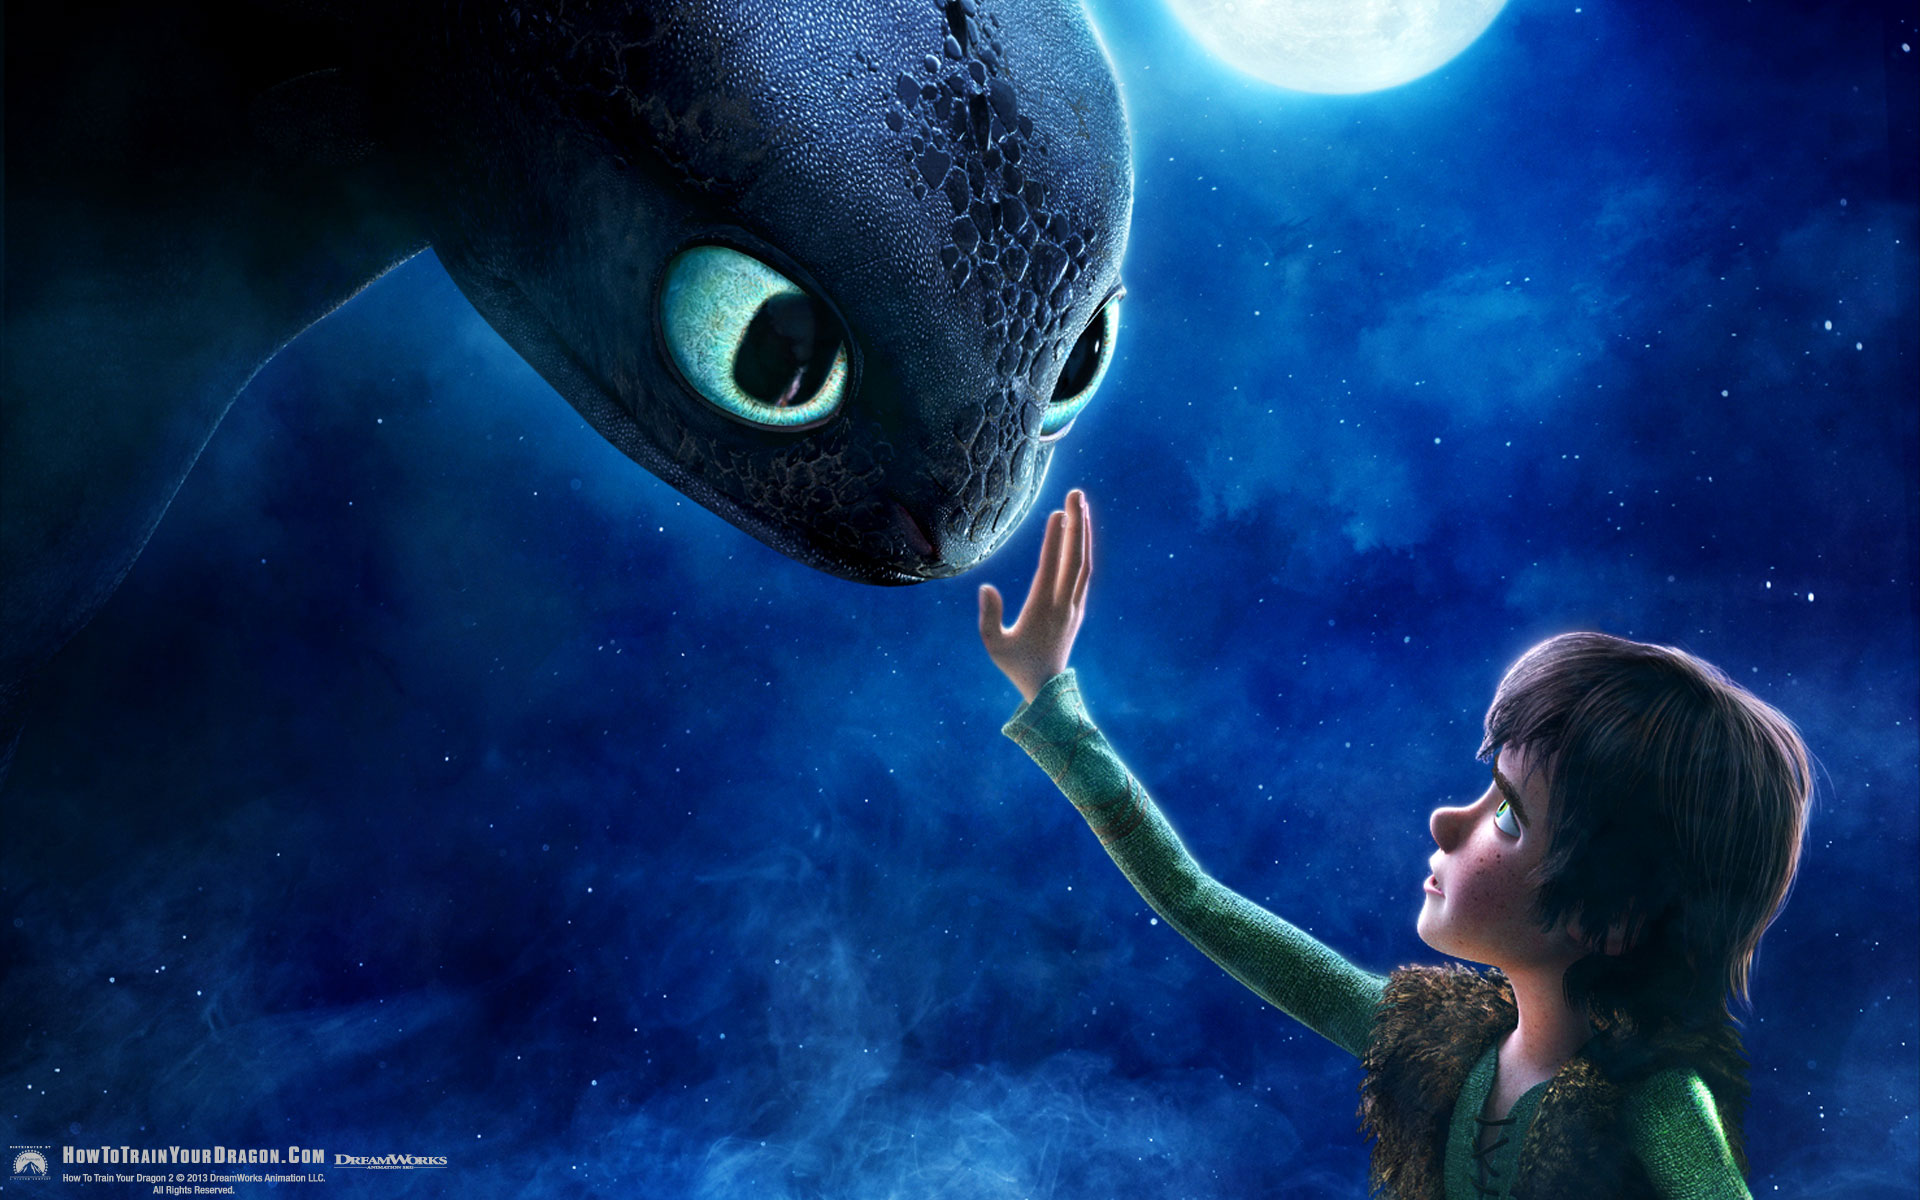 How To Train Your Dragon Wallpaper 1920x1200 69850